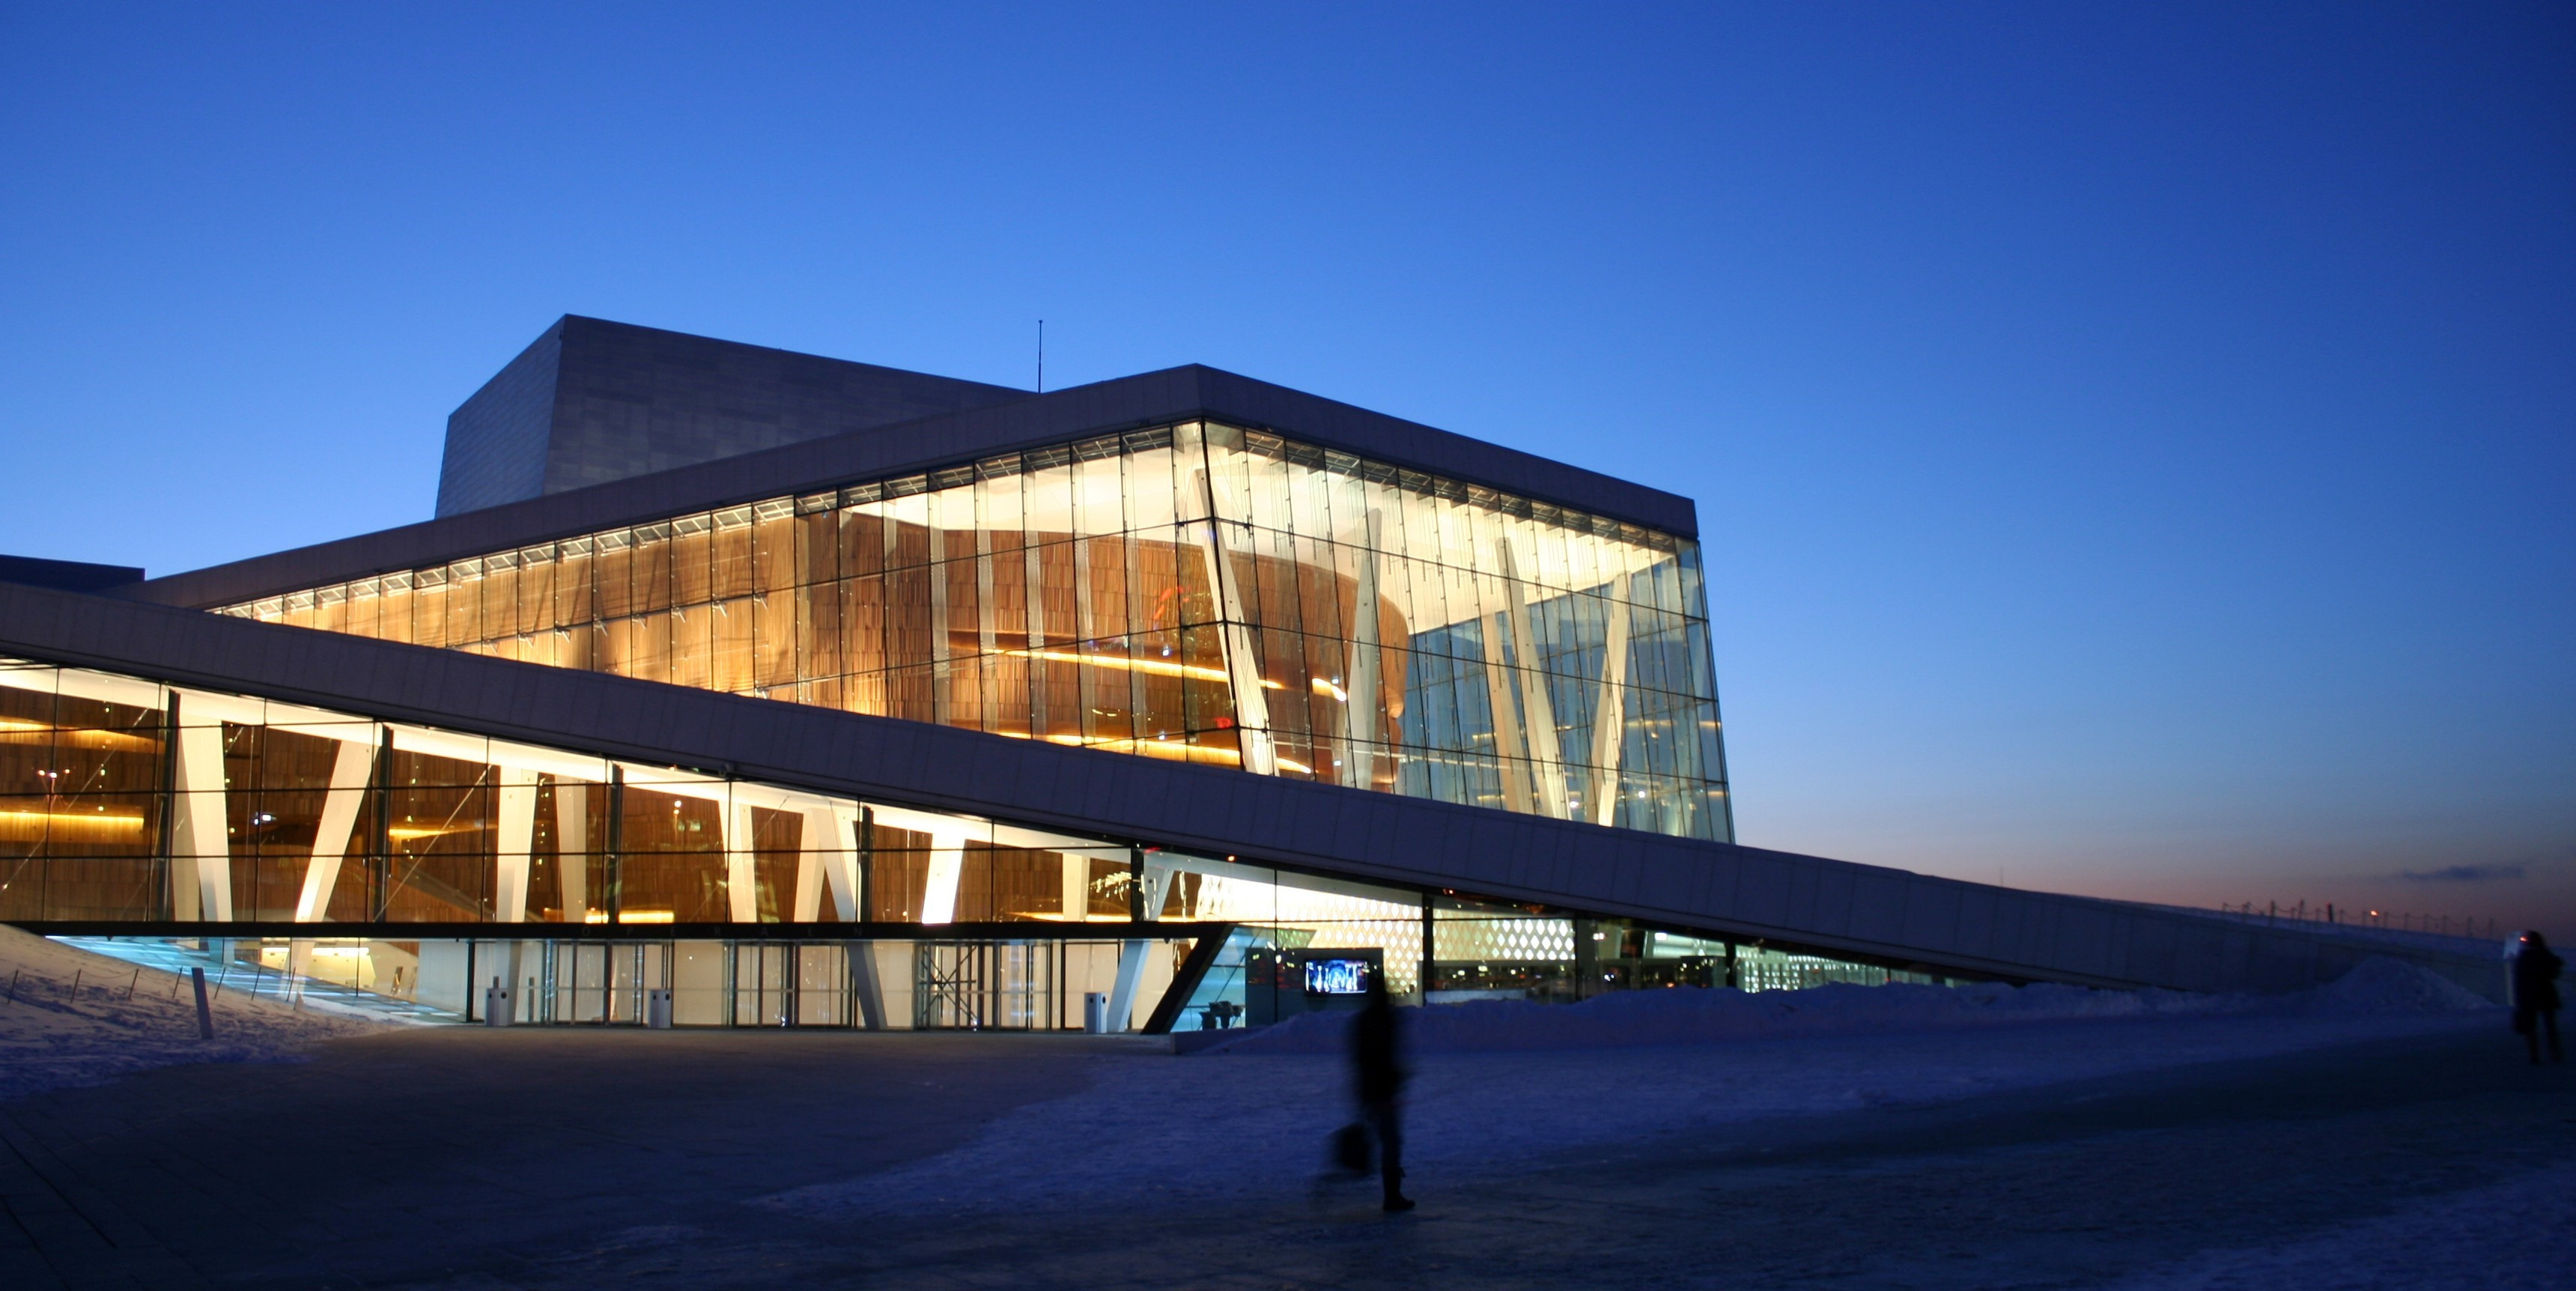 Winter morning in Oslo: The Opera House